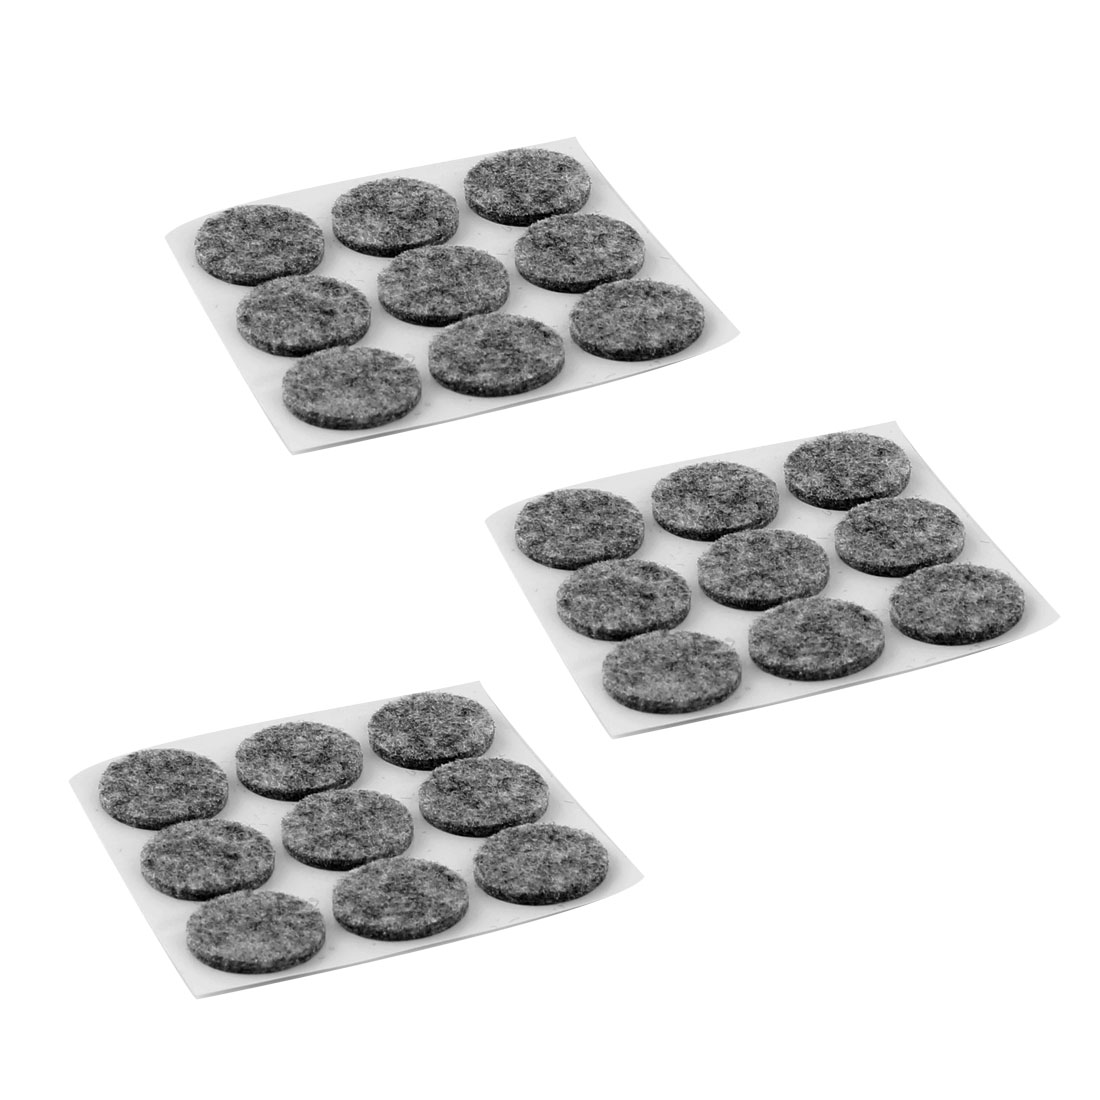 Houseware Self Adhesive Surface Protection Furniture Felt Pads Mats Gray 22mm Dia 27pcs